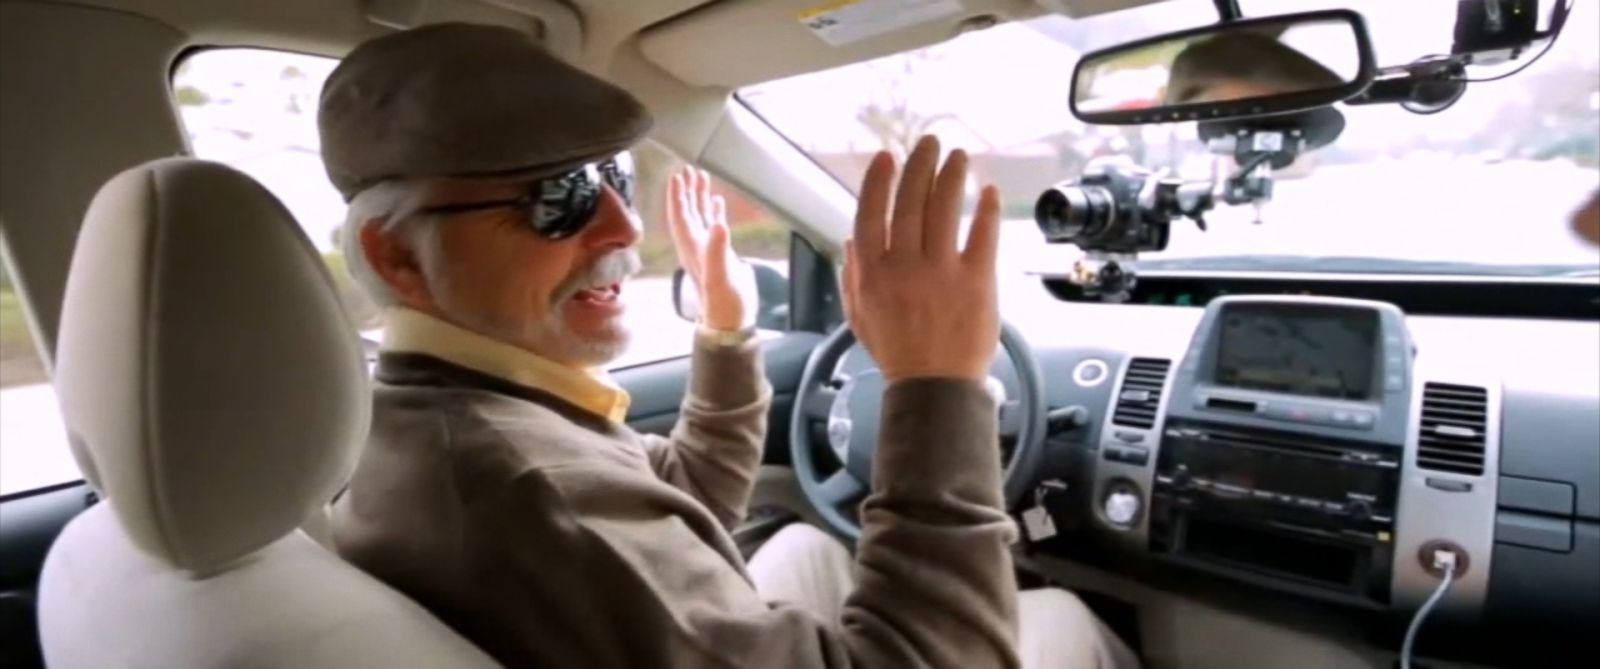 PHOTO: Steve Mahan, who is blind, took a test ride in Googles self-driving car after the federal government ruled the cars computer brain can be classified as a driver.